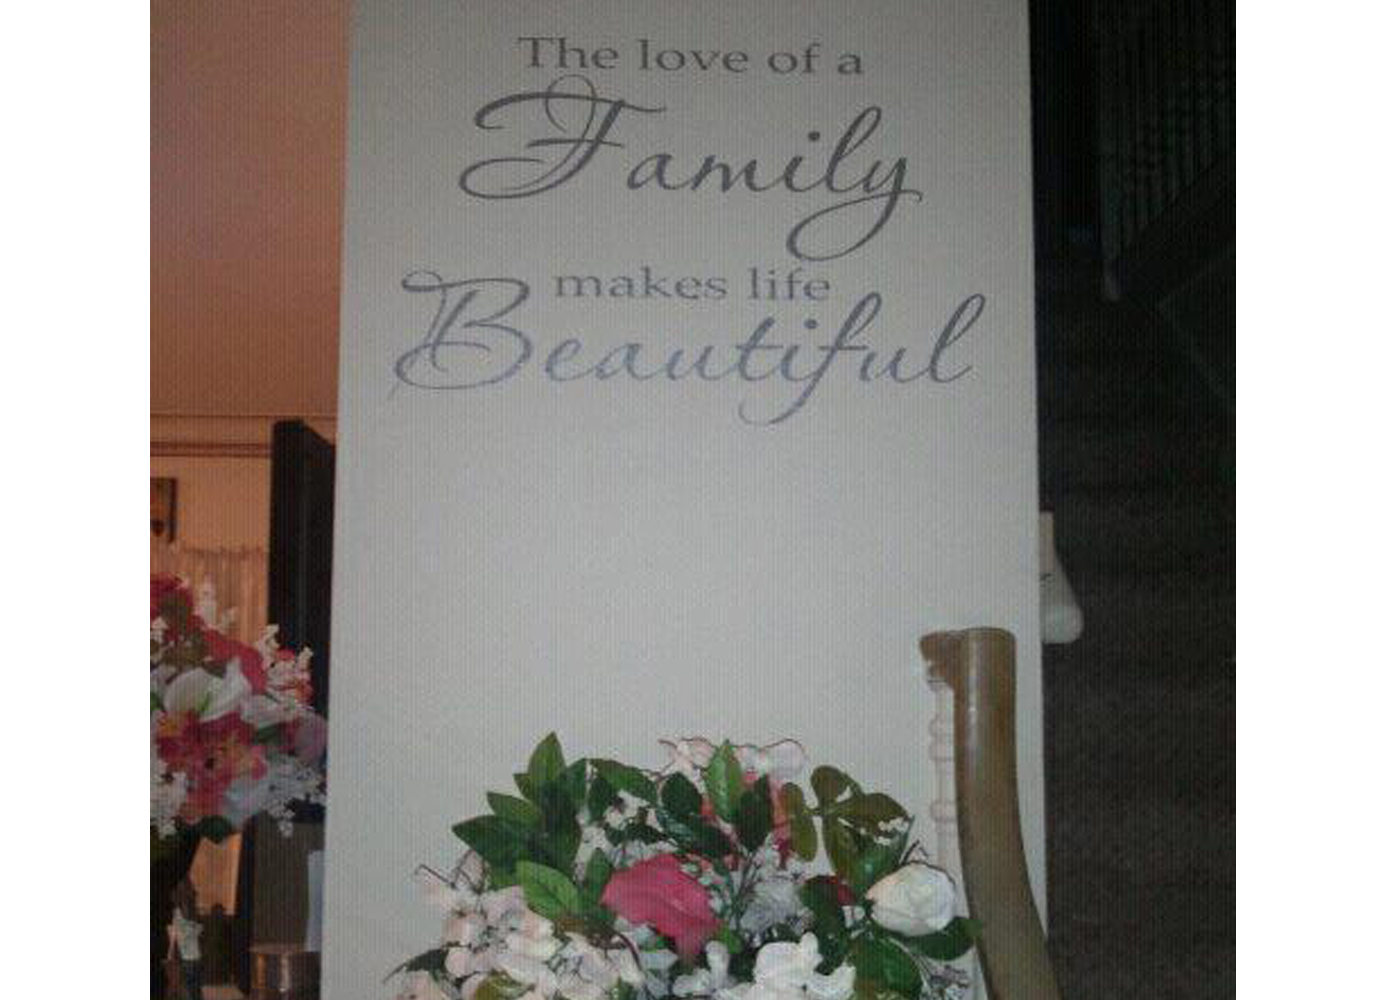 family-makes-life-beautiful-silver-wall-decal-saying.jpg